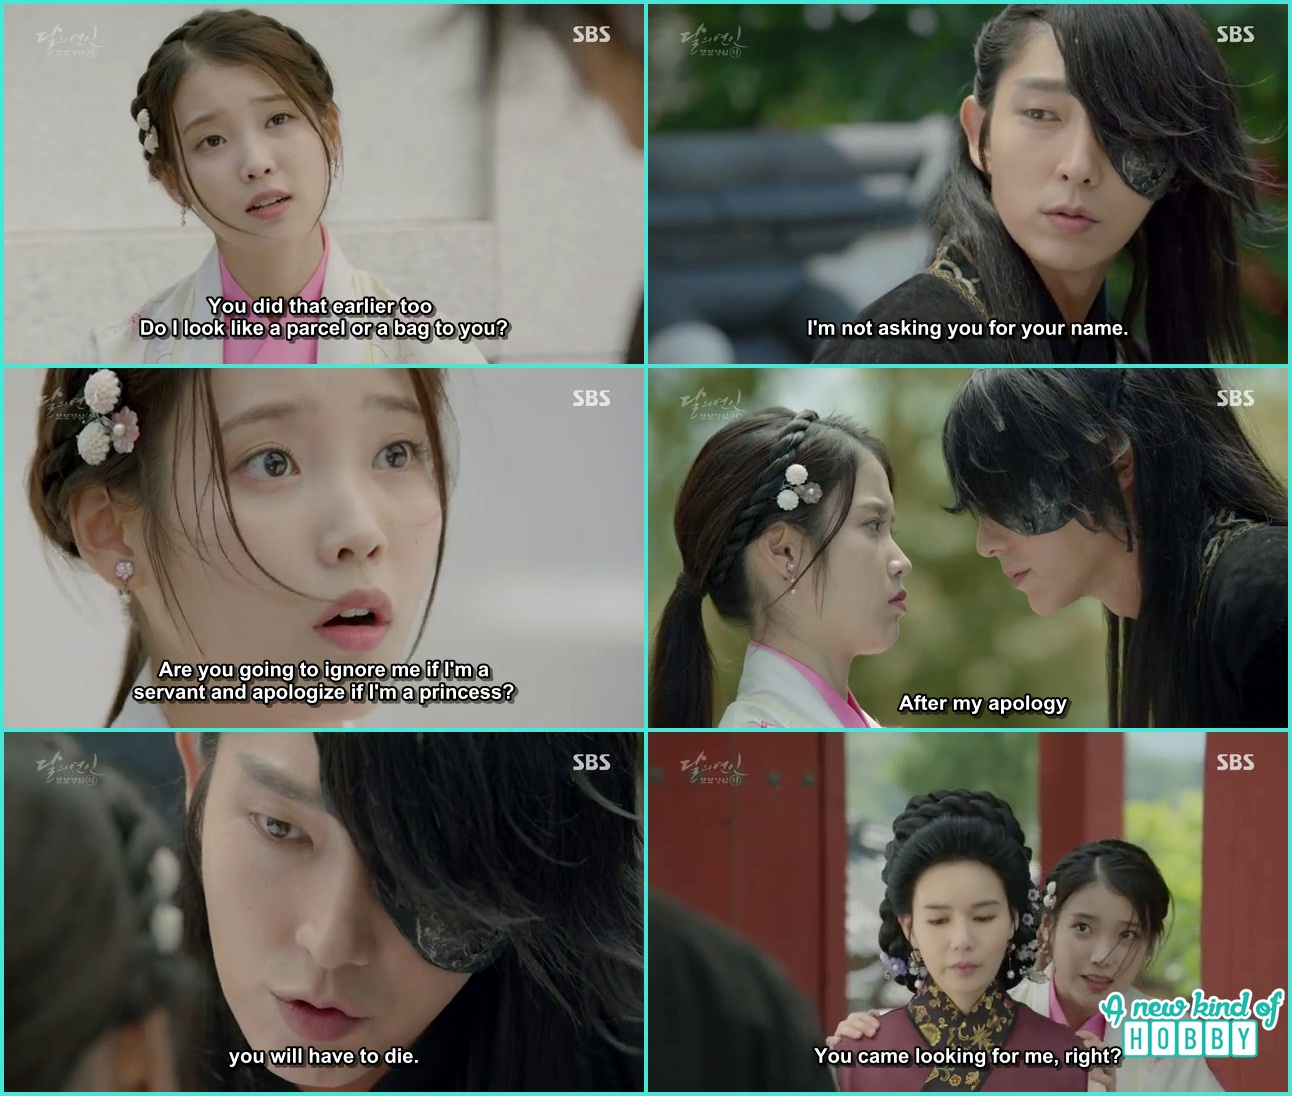 Moon lovers scarlet heart ryeo episode 2 2016 - 4th Princ Threaten Hae So If You Ant An Apology You Have To Die Moon